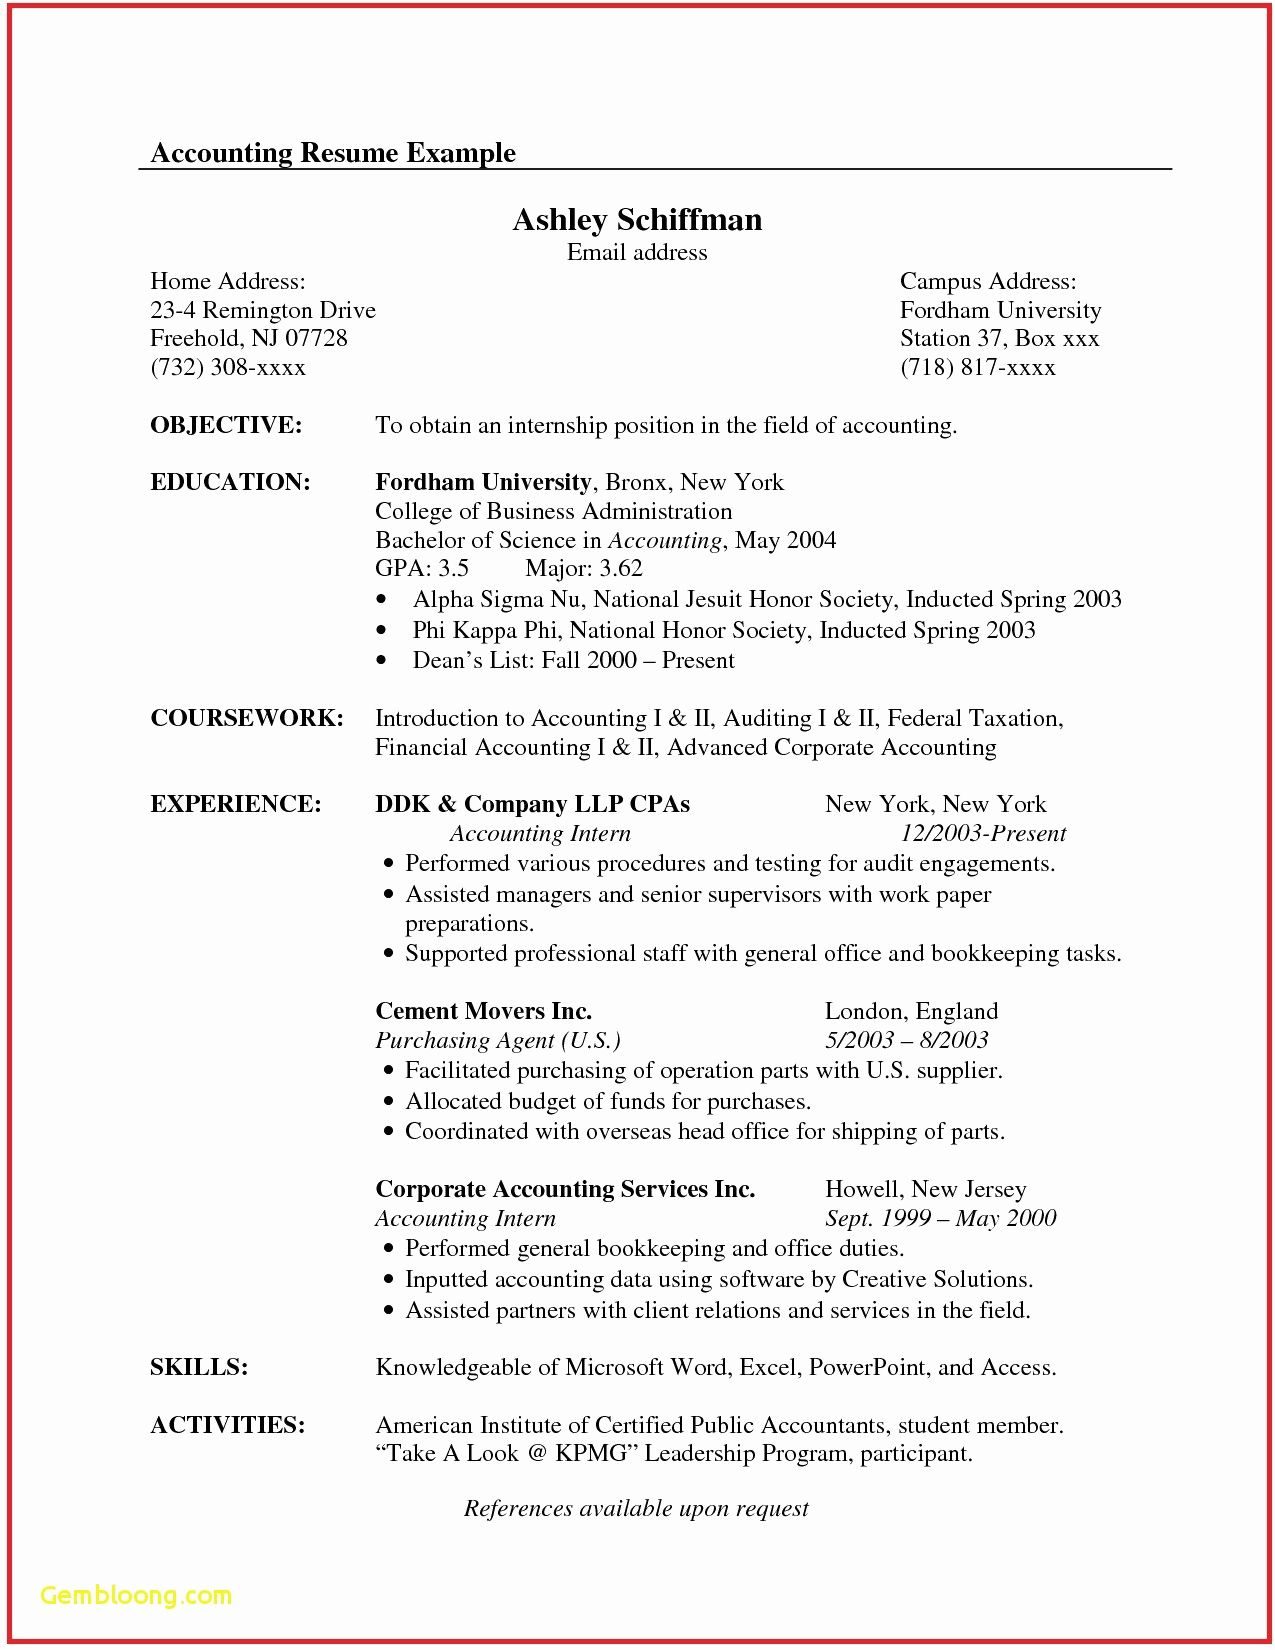 68 New Photos Of Business Accounting Resume Examples Resume